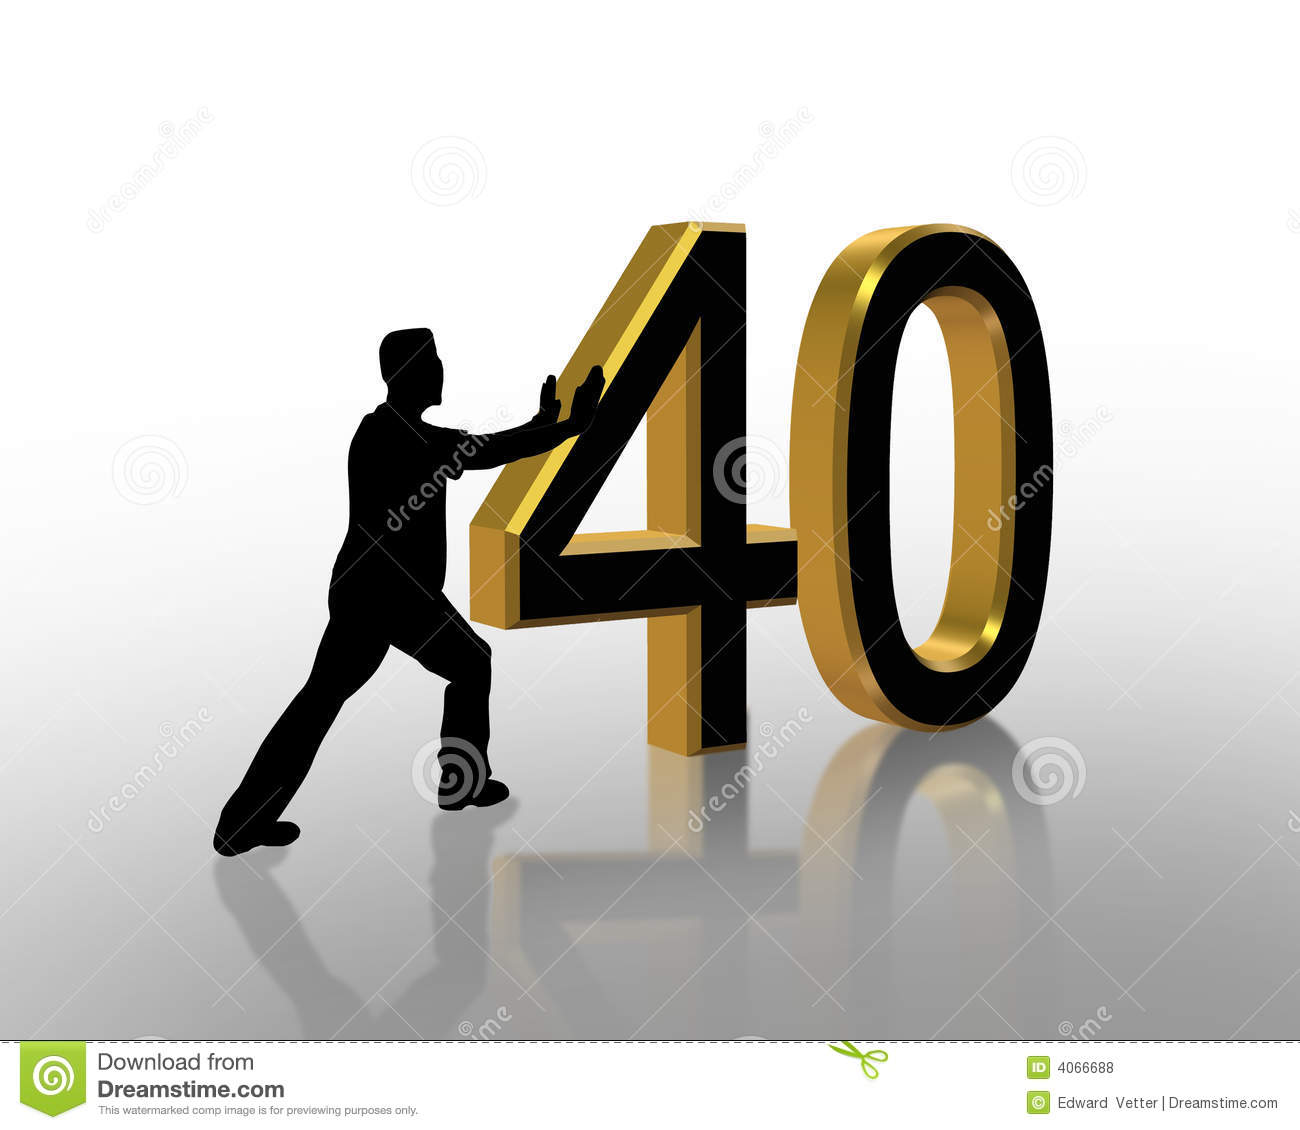 3D Illustration Of Man Pushing Numbers For Birthday Card Or Background